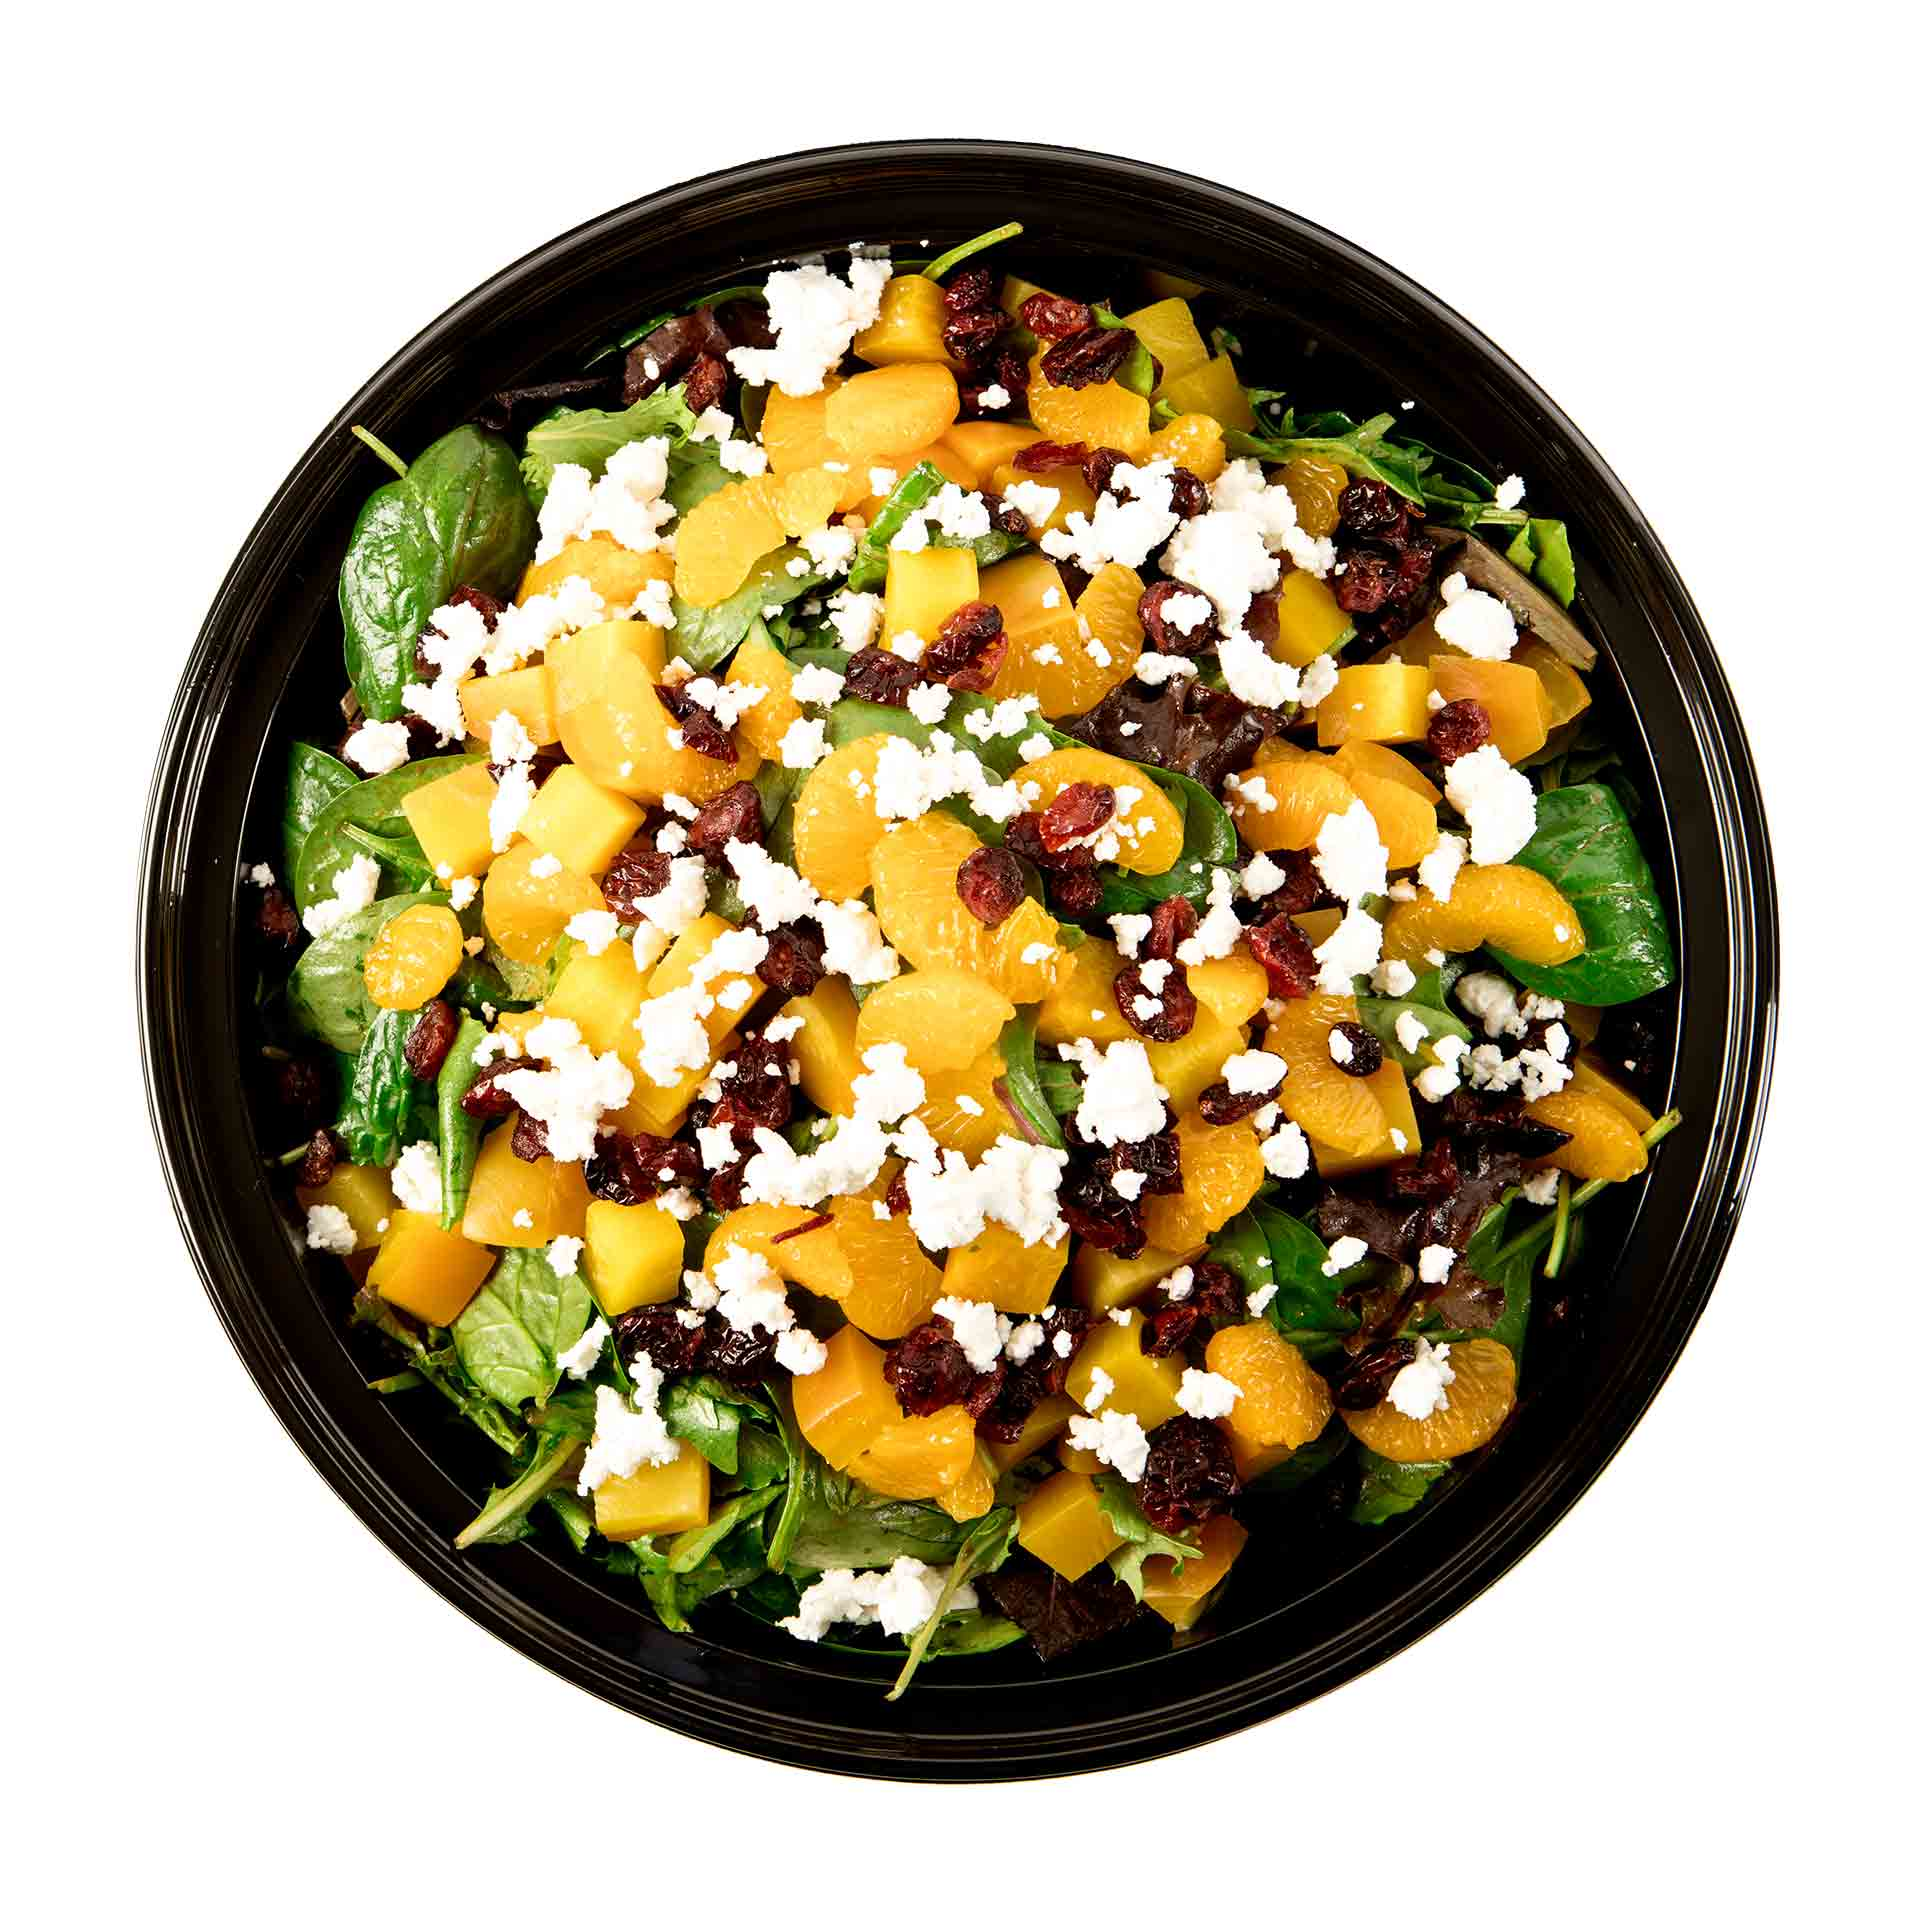 Golden Beet and Goat Cheese Salad